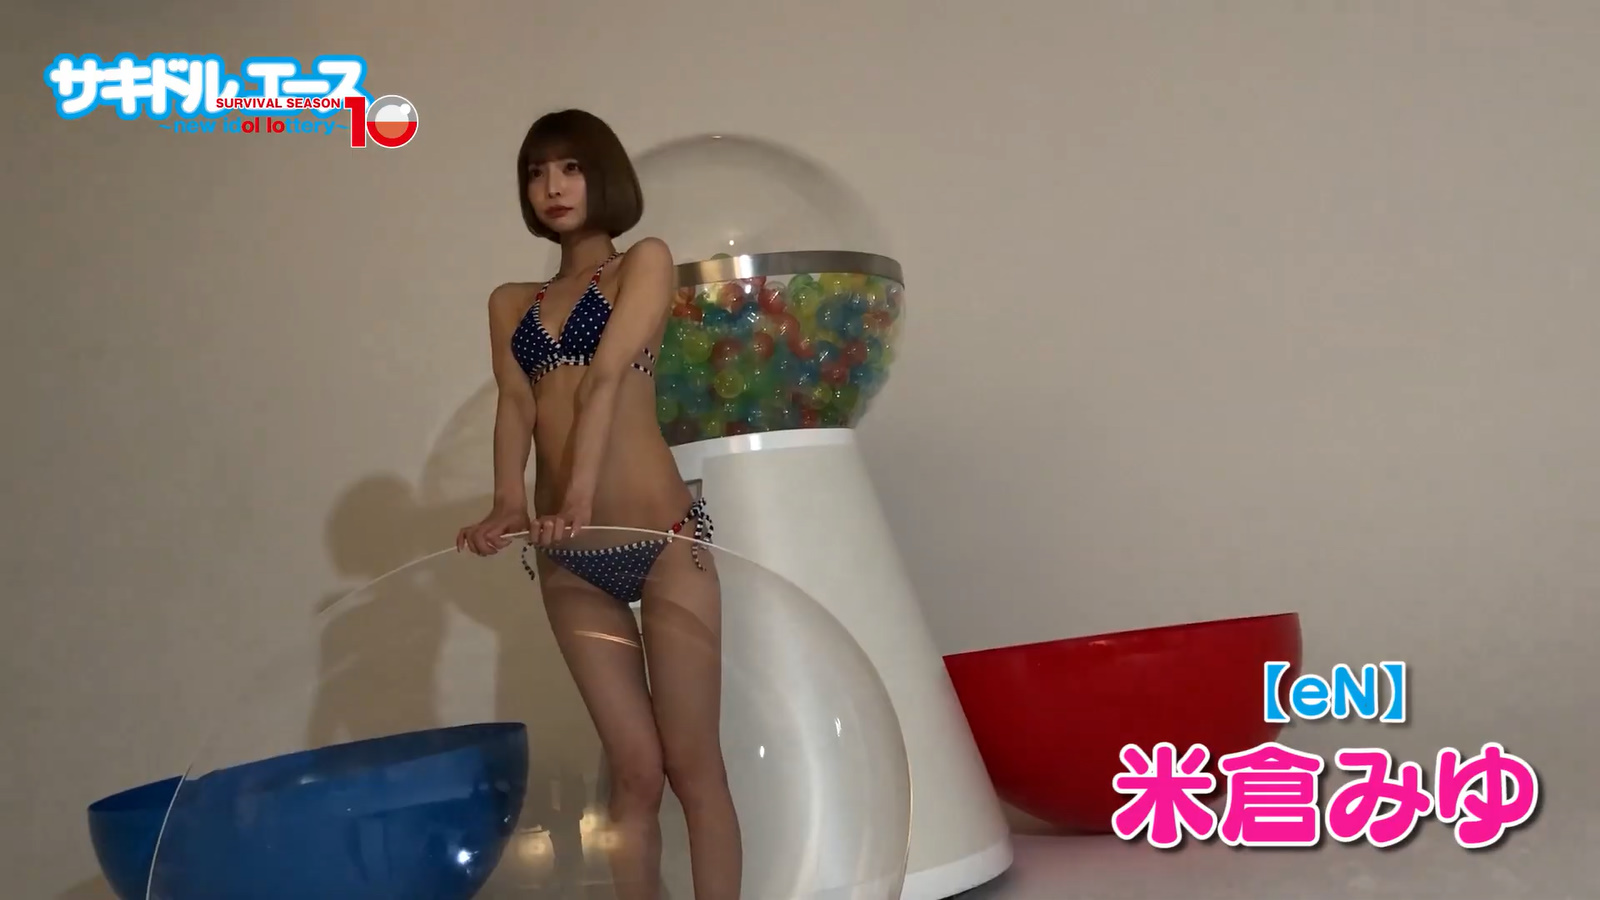 Sakidol Ace 10 Introduction Movie Capture of Swimsuit201